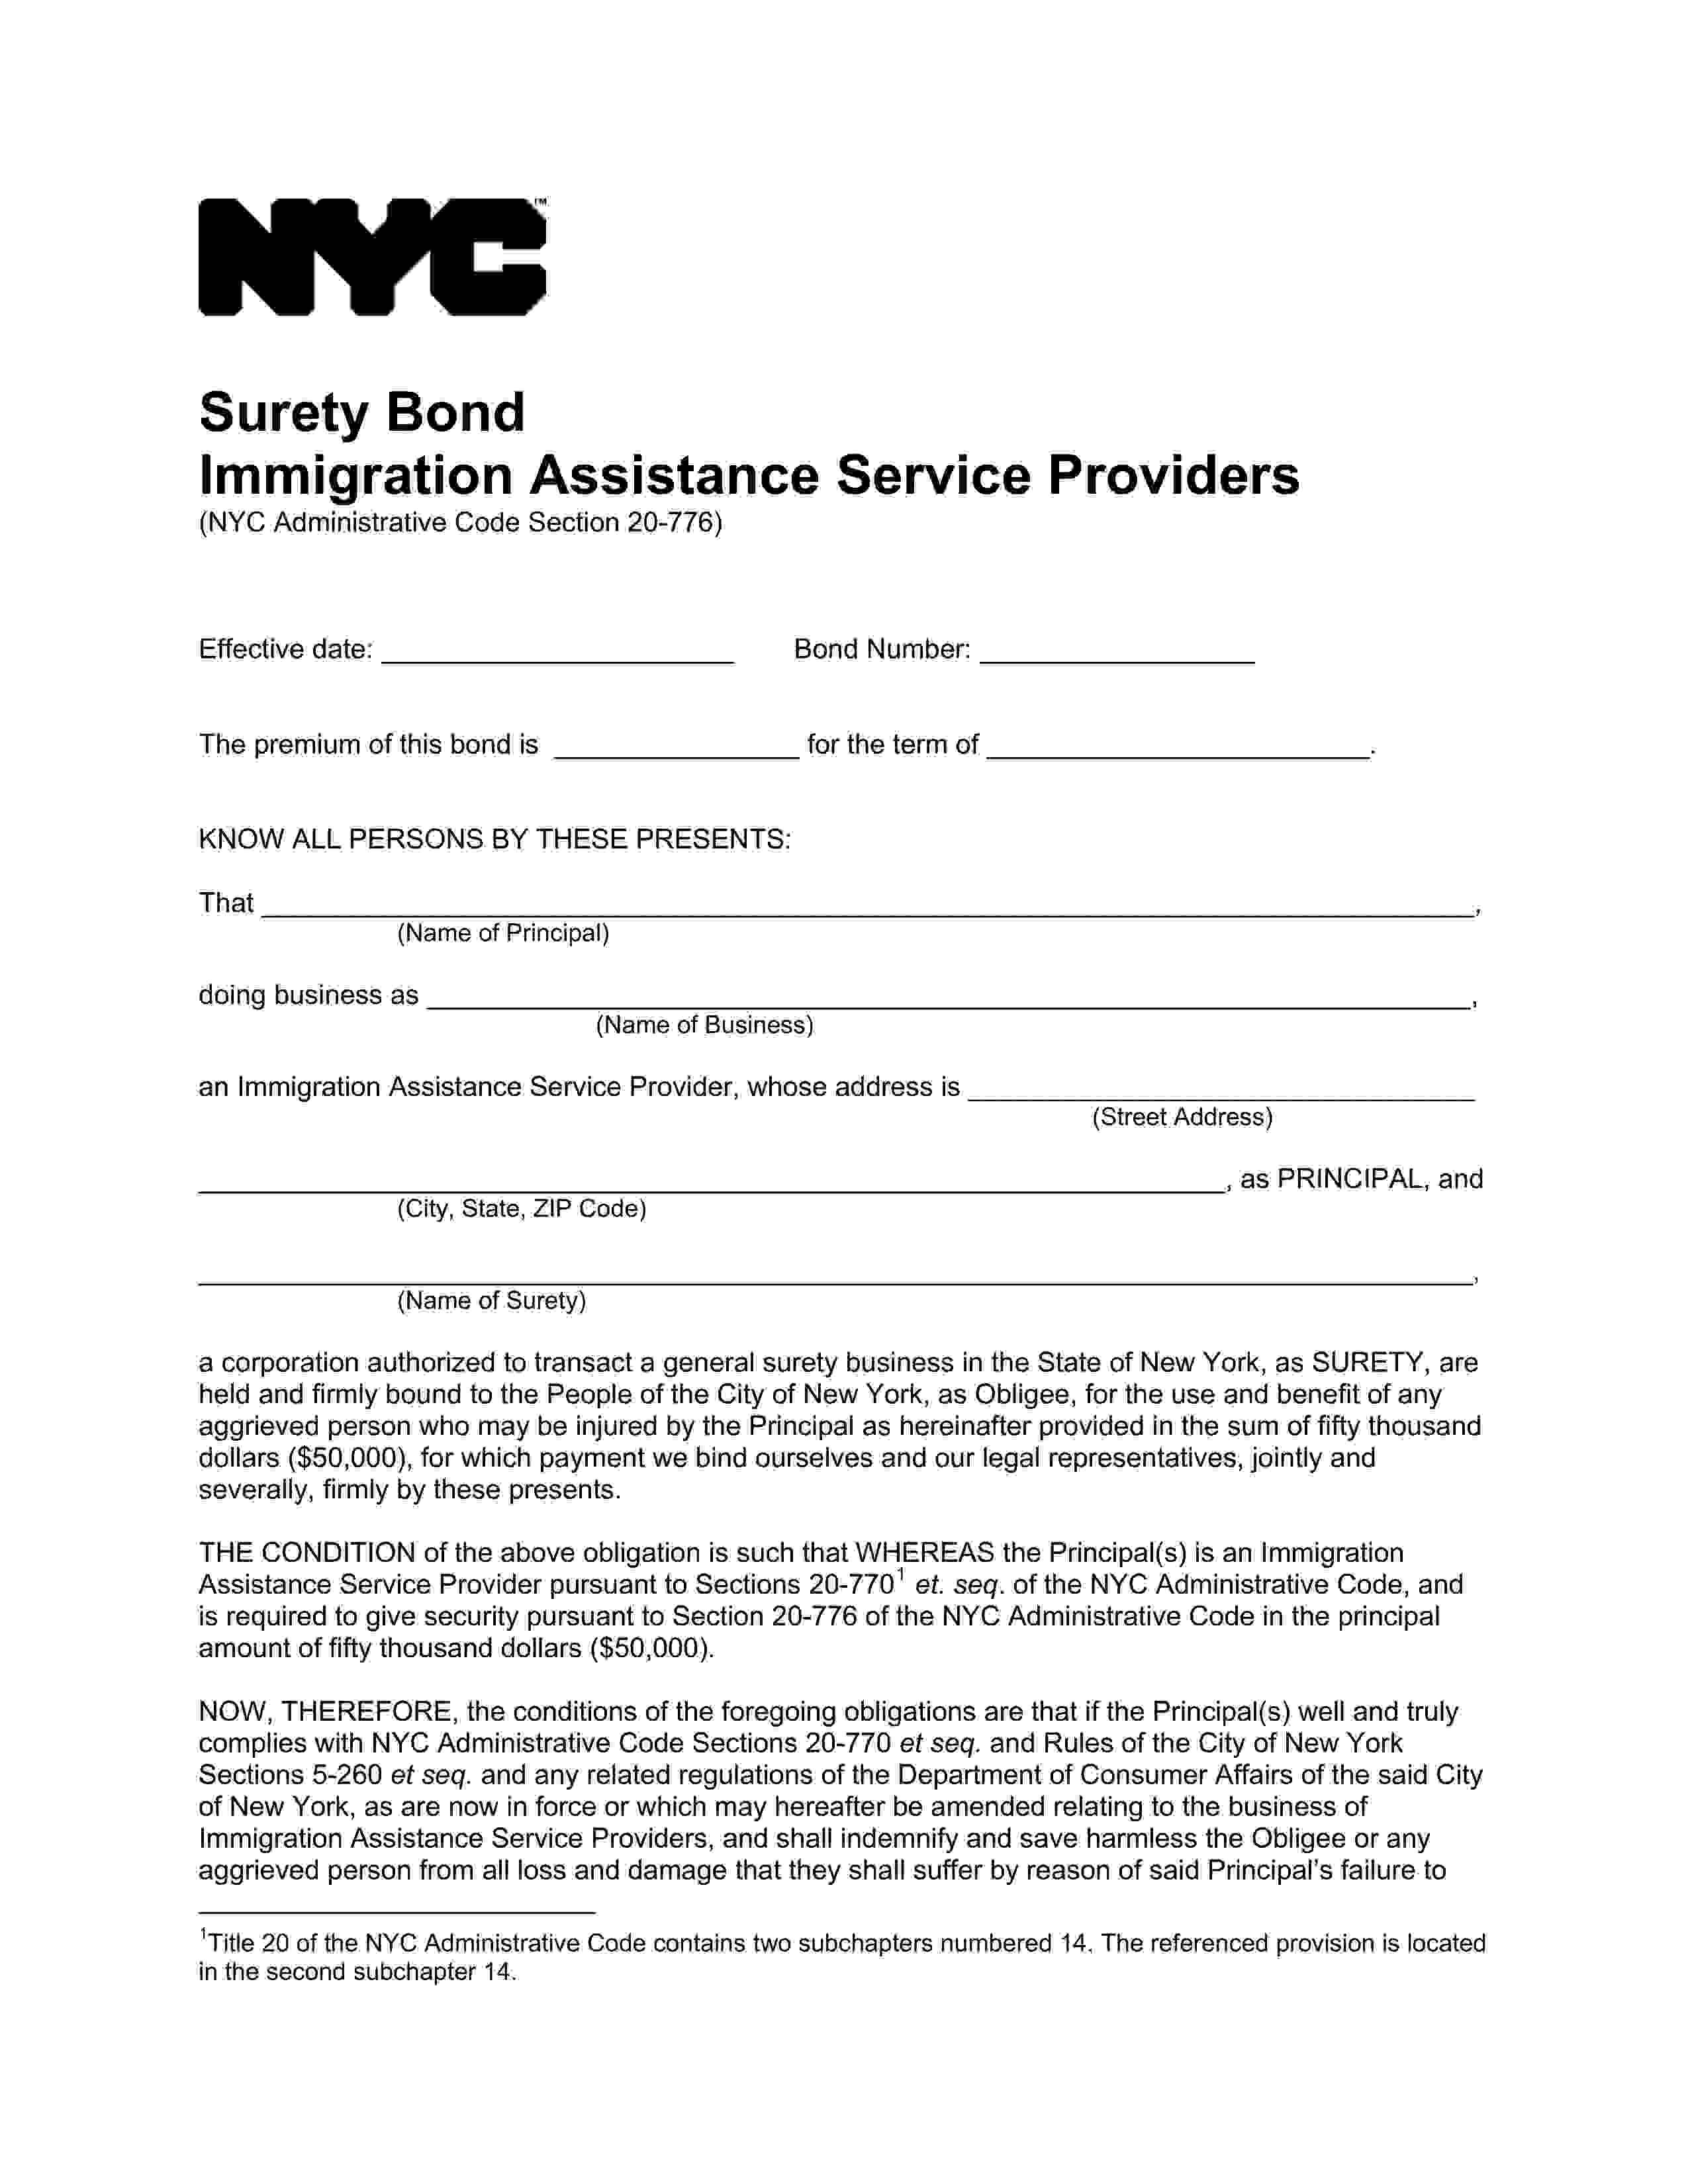 New York New york New York - City Immigration Assistance Service Provider sample image